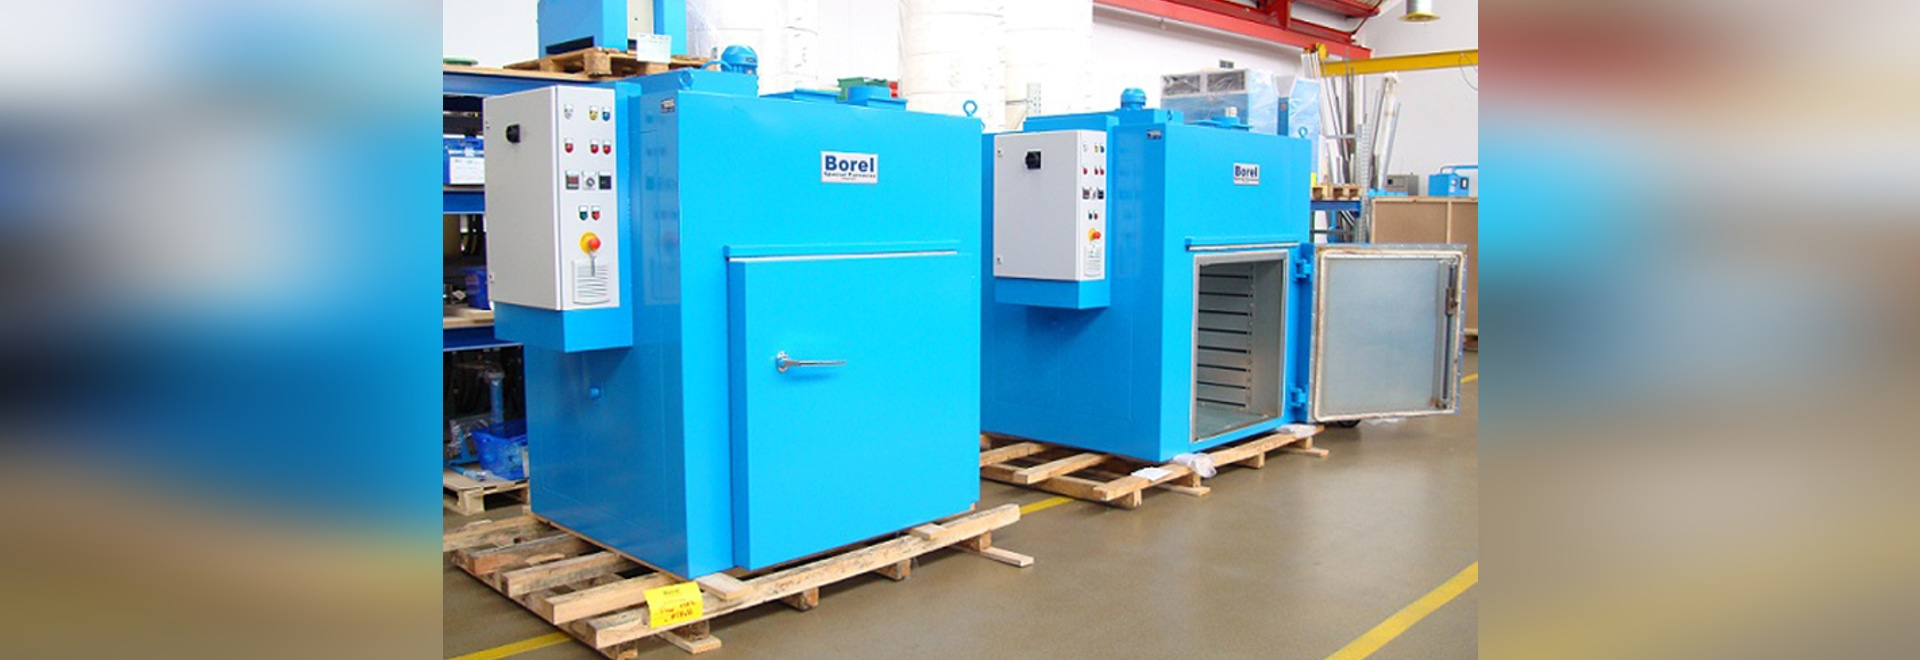 Industrial ventilated ovens, 1000 liters, 350 ° C, central control, Benelux synthetic textiles industry